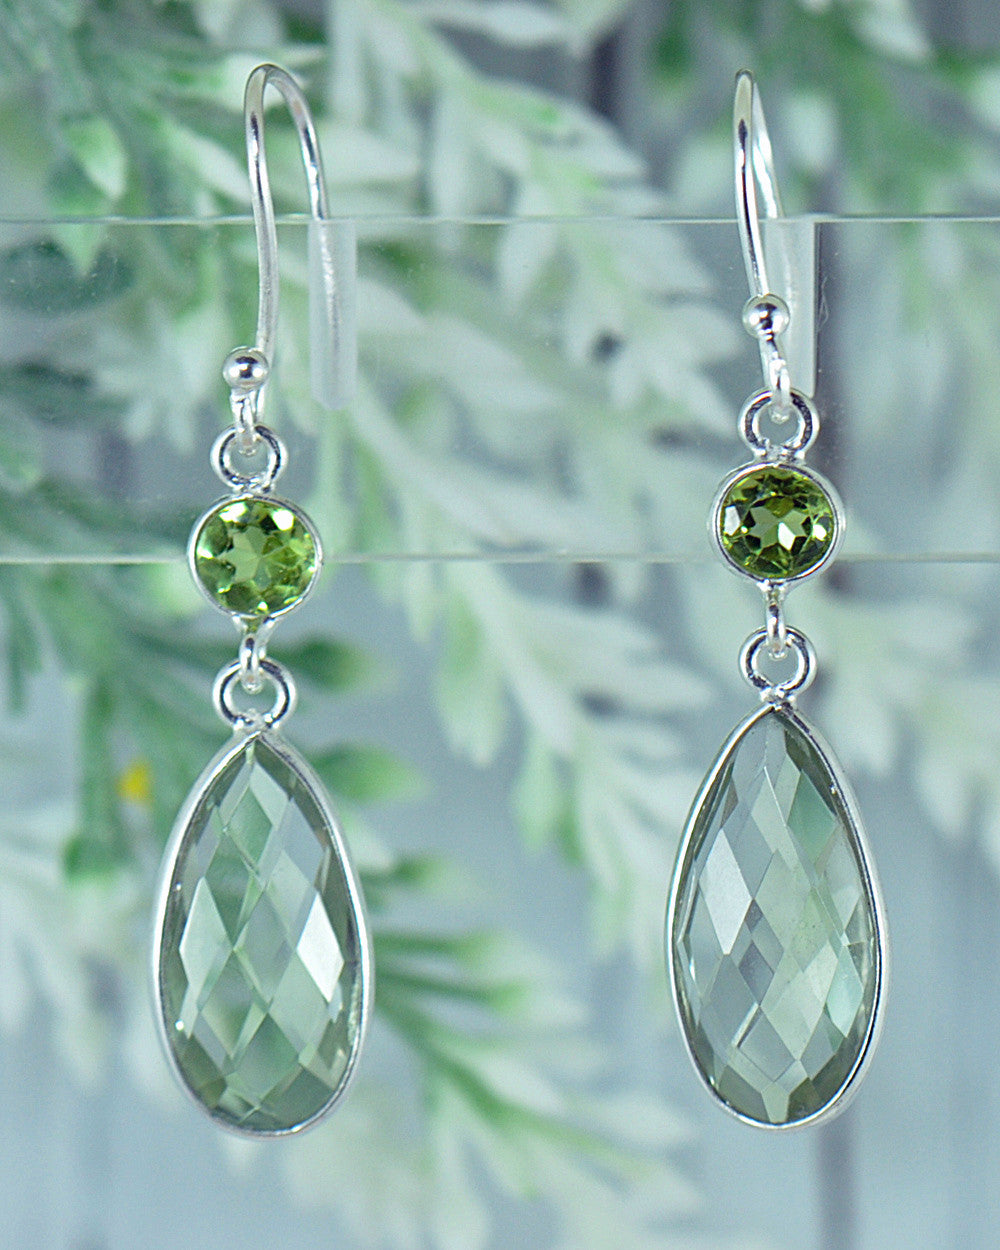 Green Amethyst Prasiolite Earrings in Sterling Silver - Sivalya